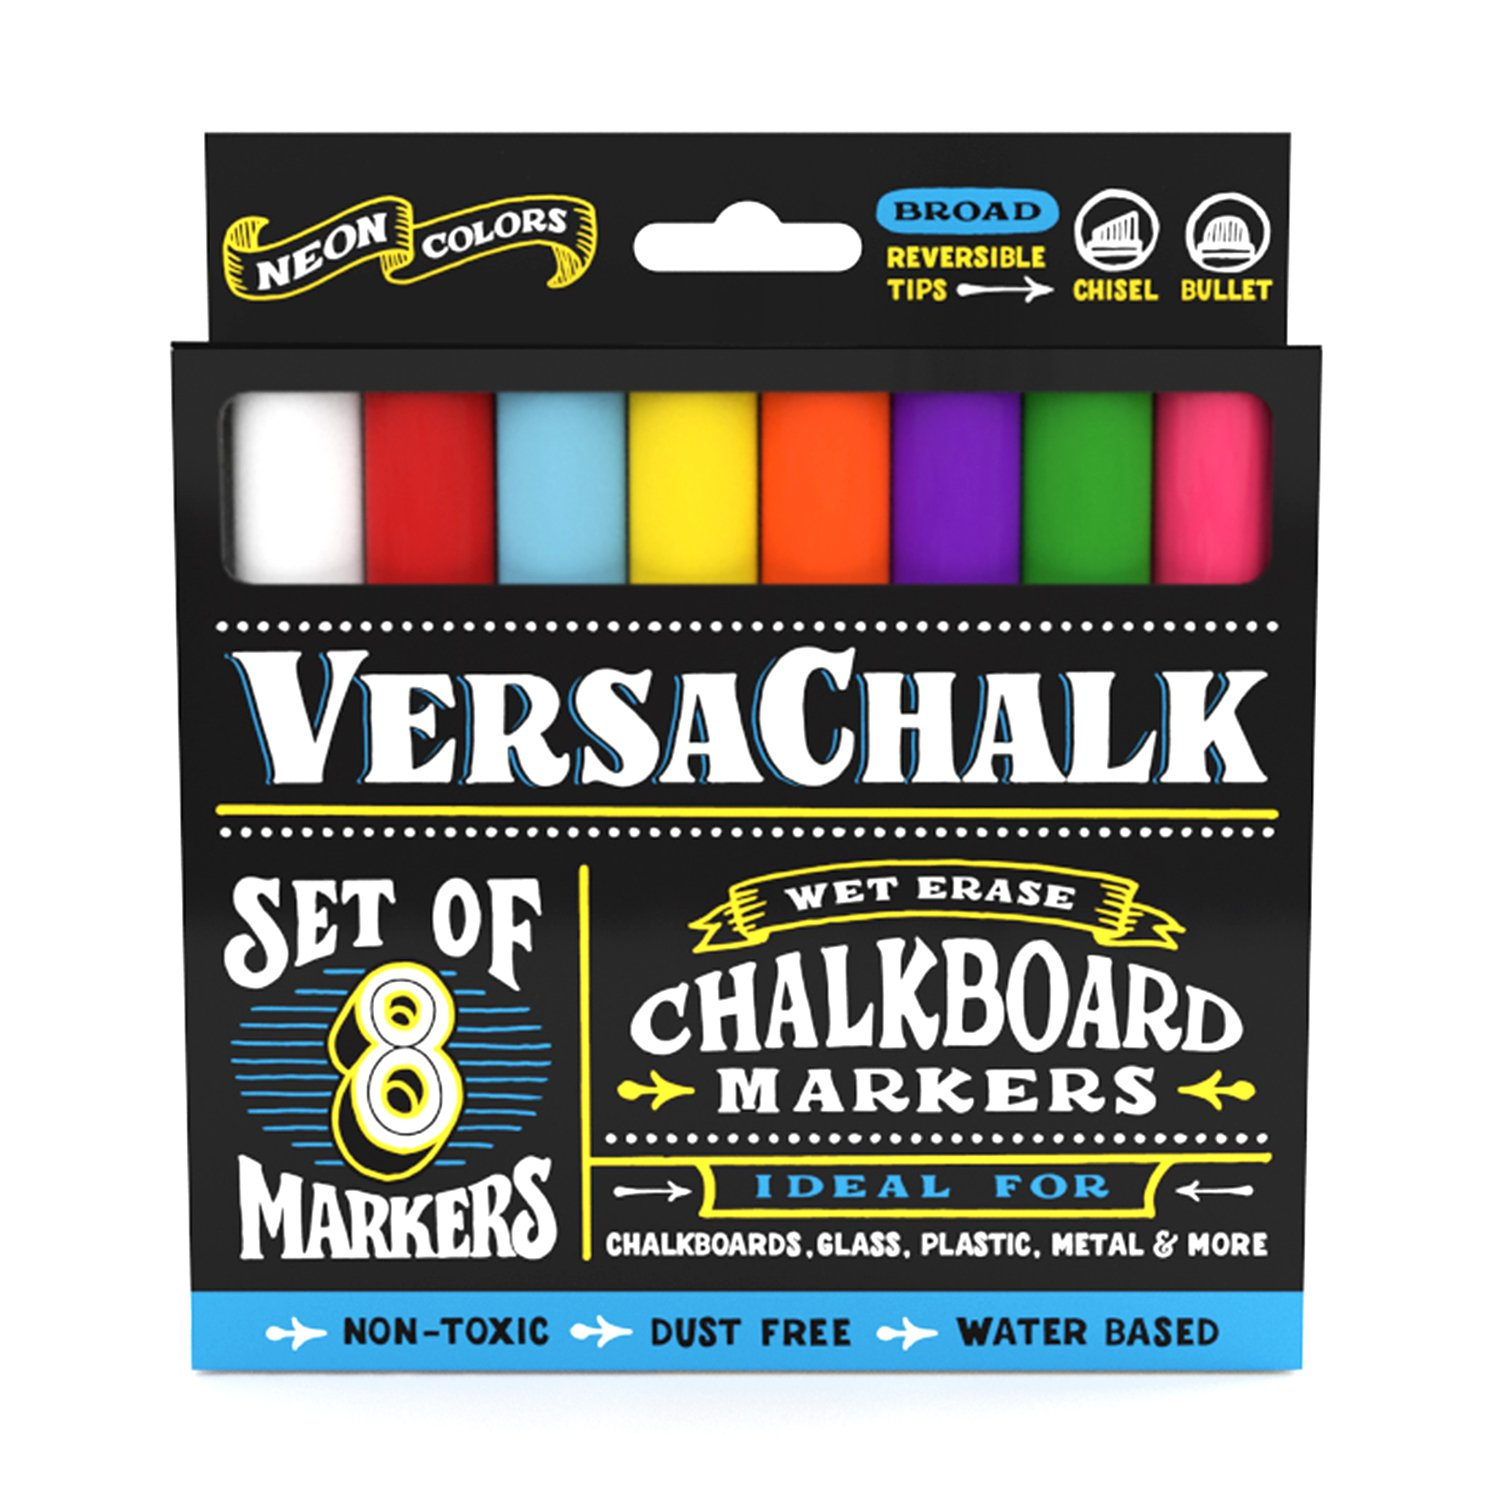 Amazon.com : Chalk Markers for Chalkboard by VersaChalk (Reversible ...